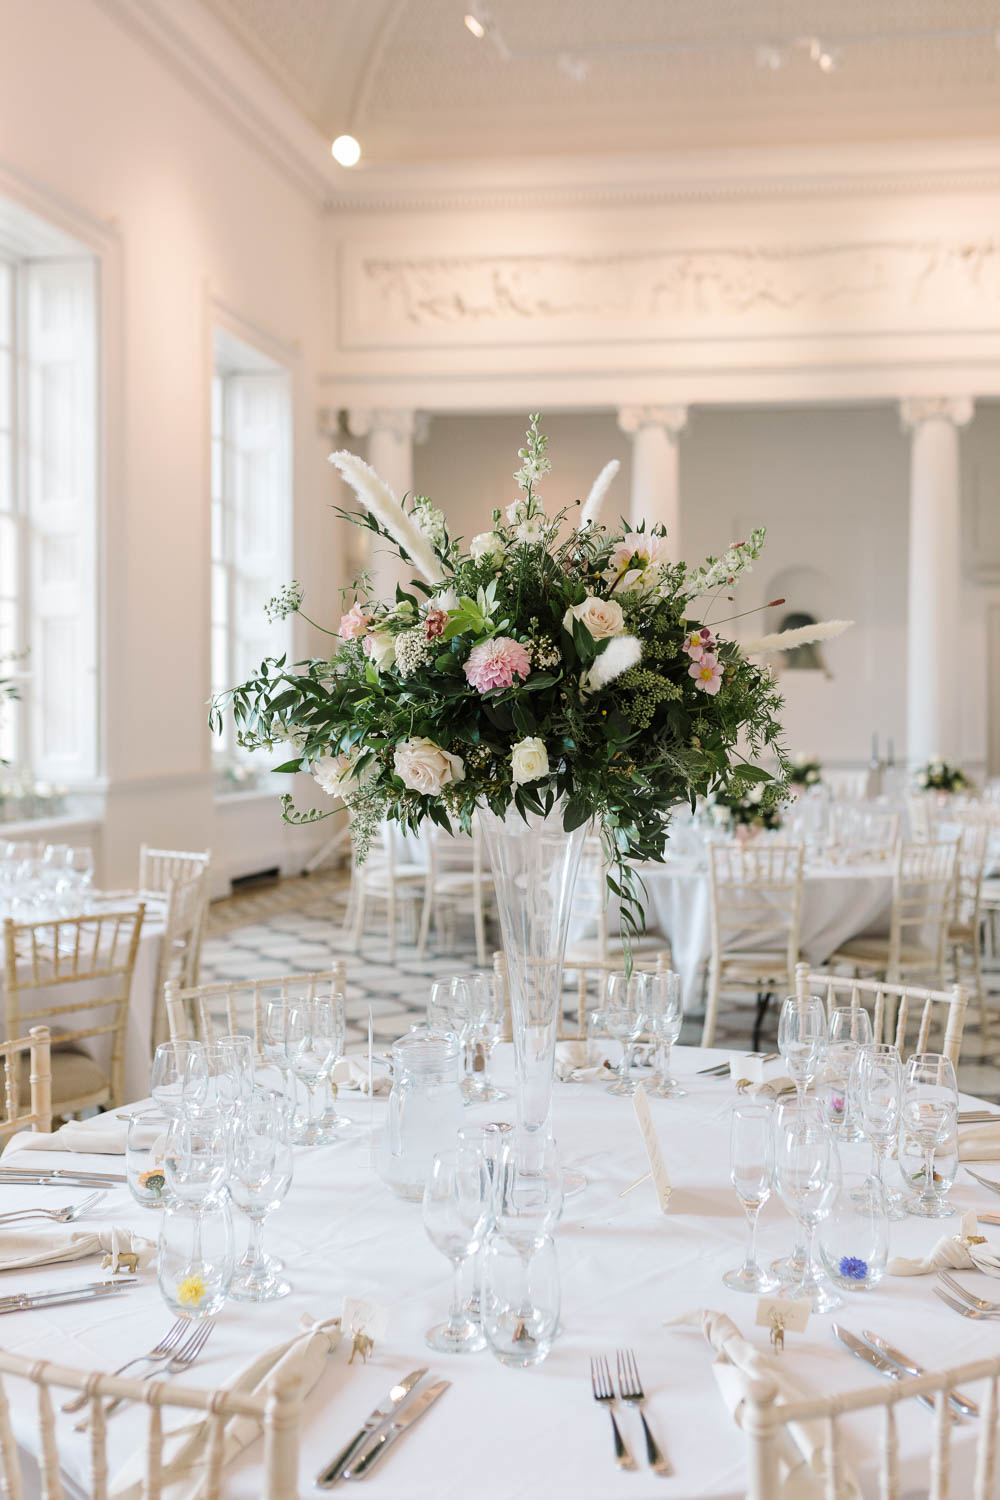 Tall Flower Arrangement Centrepiece Round Tables Compton Verney Wedding Danielle Smith Photography